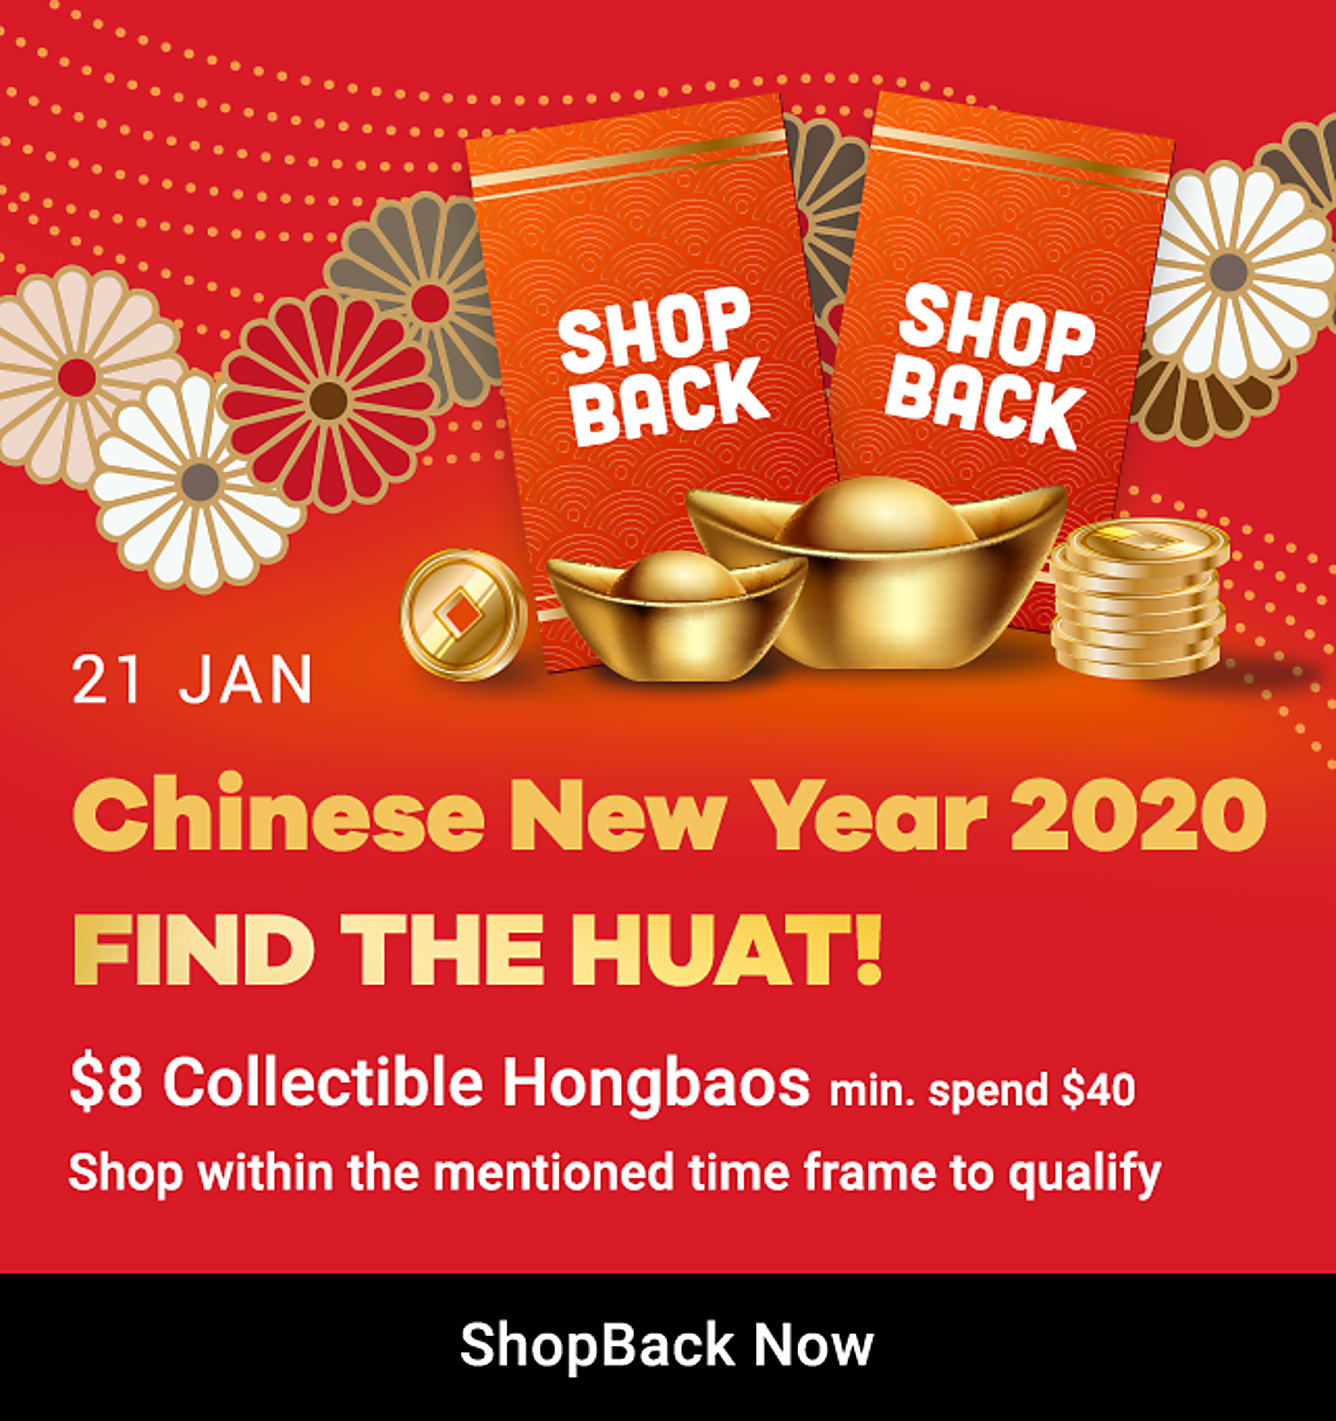 find the huat $8 collectible hongbaos